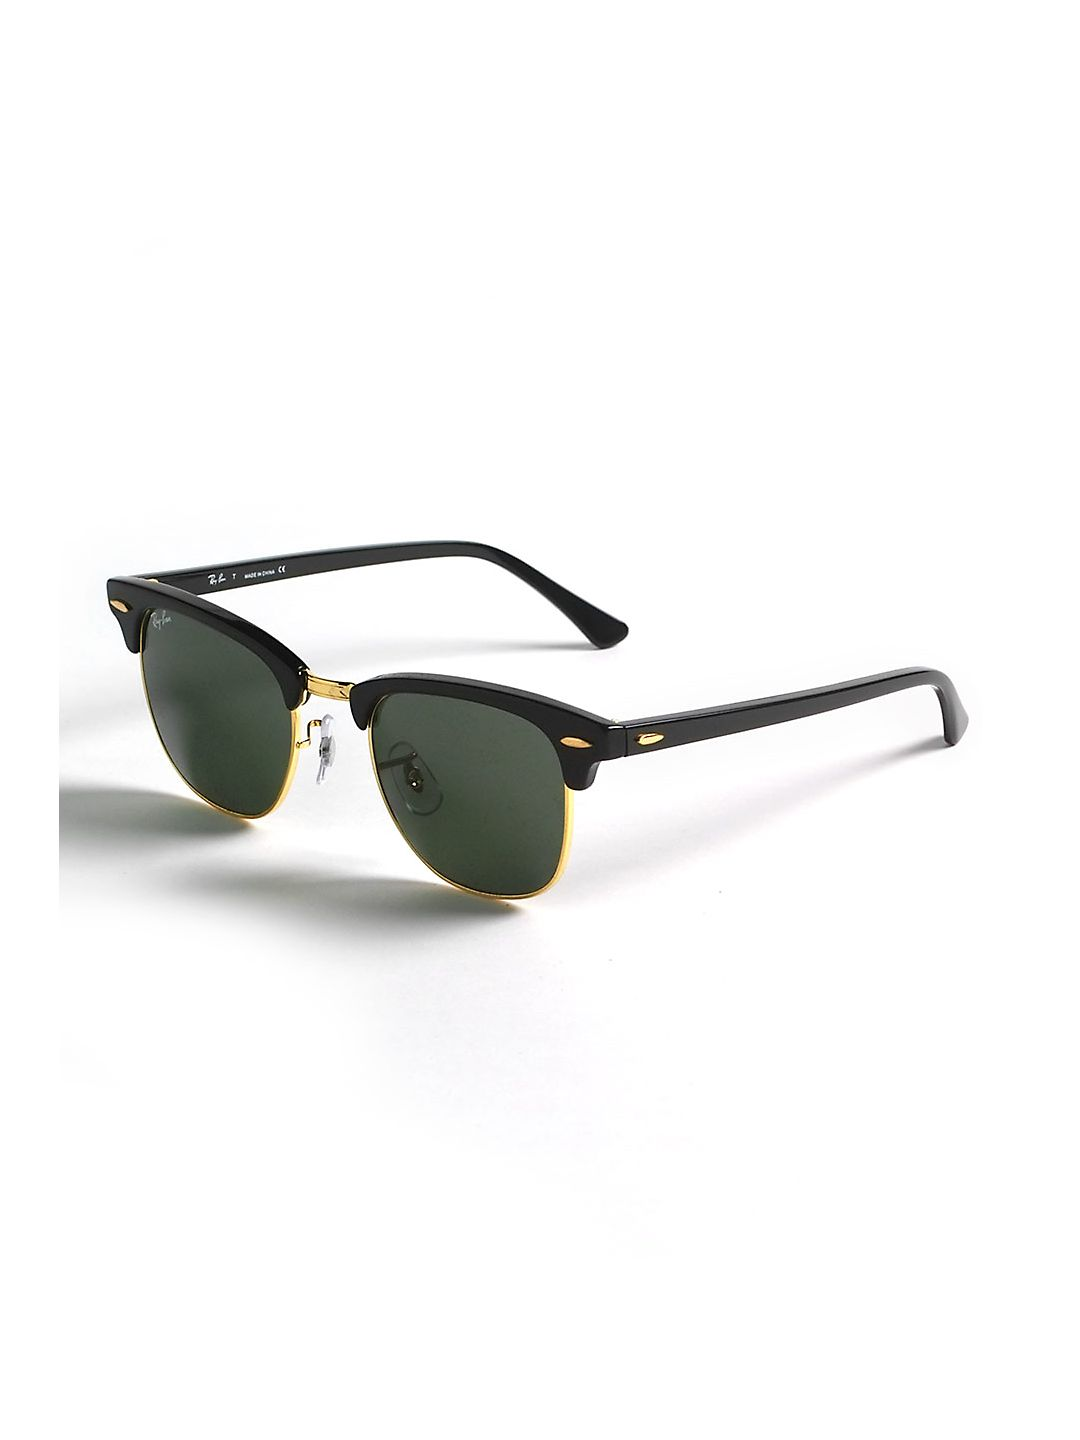 Ray-Ban Unisex RB3016 Classic Clubmaster Sunglasses, 49mm